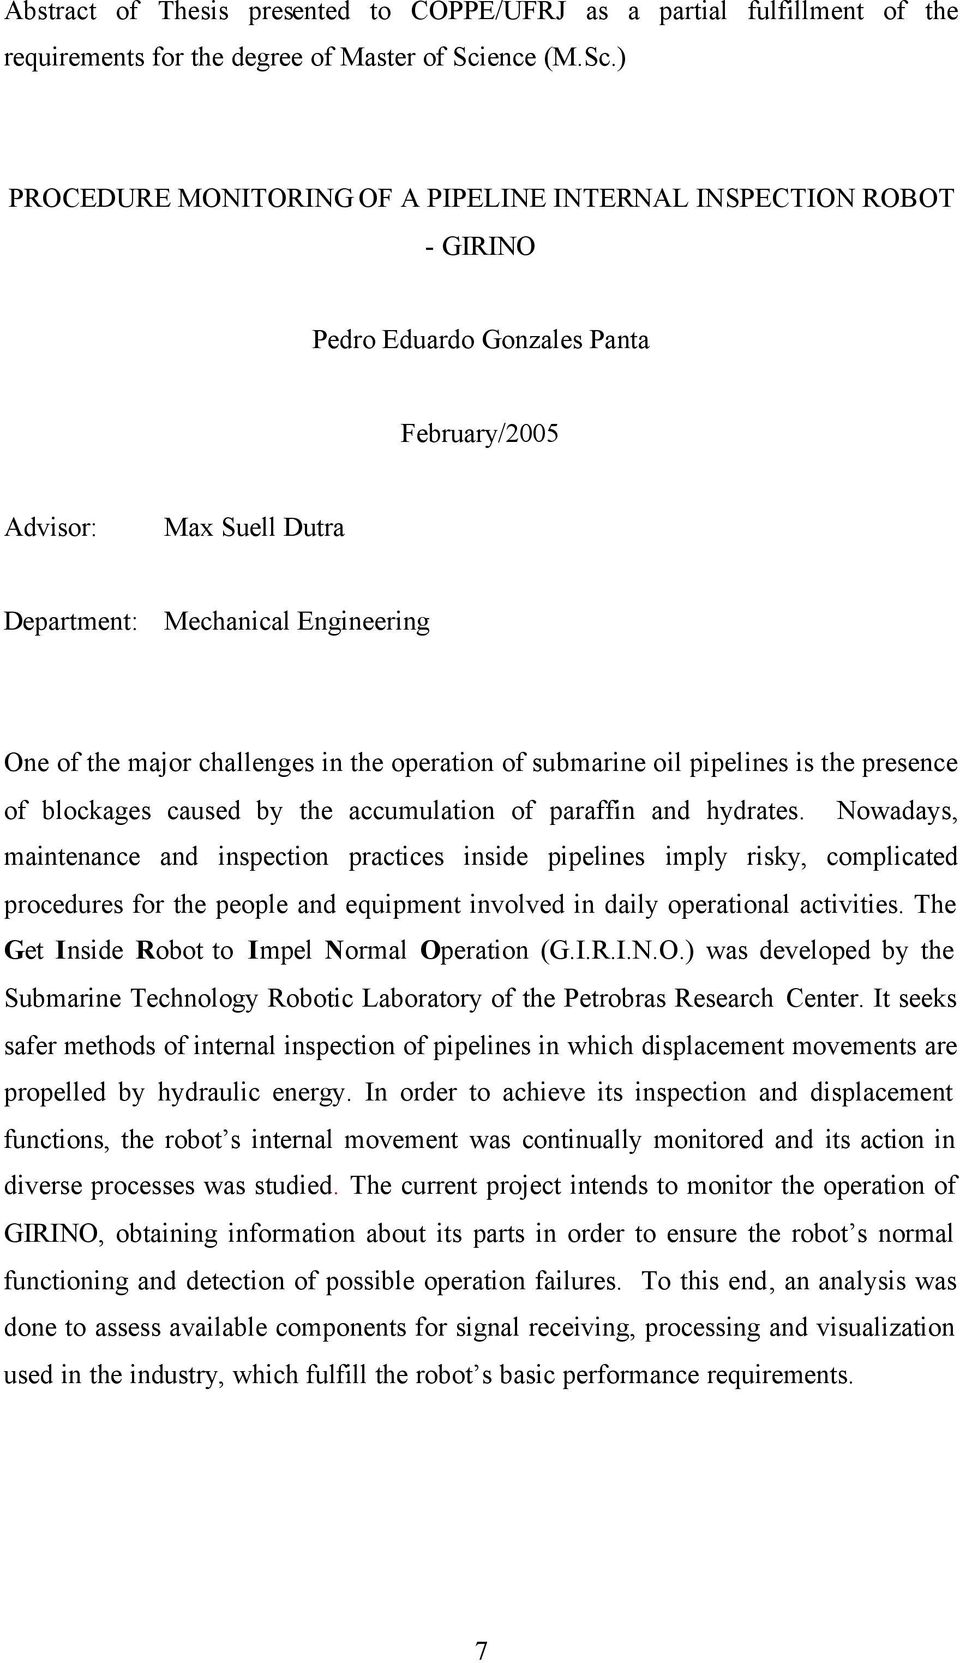 ) PROCEDURE MONITORING OF A PIPELINE INTERNAL INSPECTION ROBOT - GIRINO Pedro Eduardo Gonzales Panta February/2005 Advisor: Max Suell Dutra Department: Mechanical Engineering One of the major